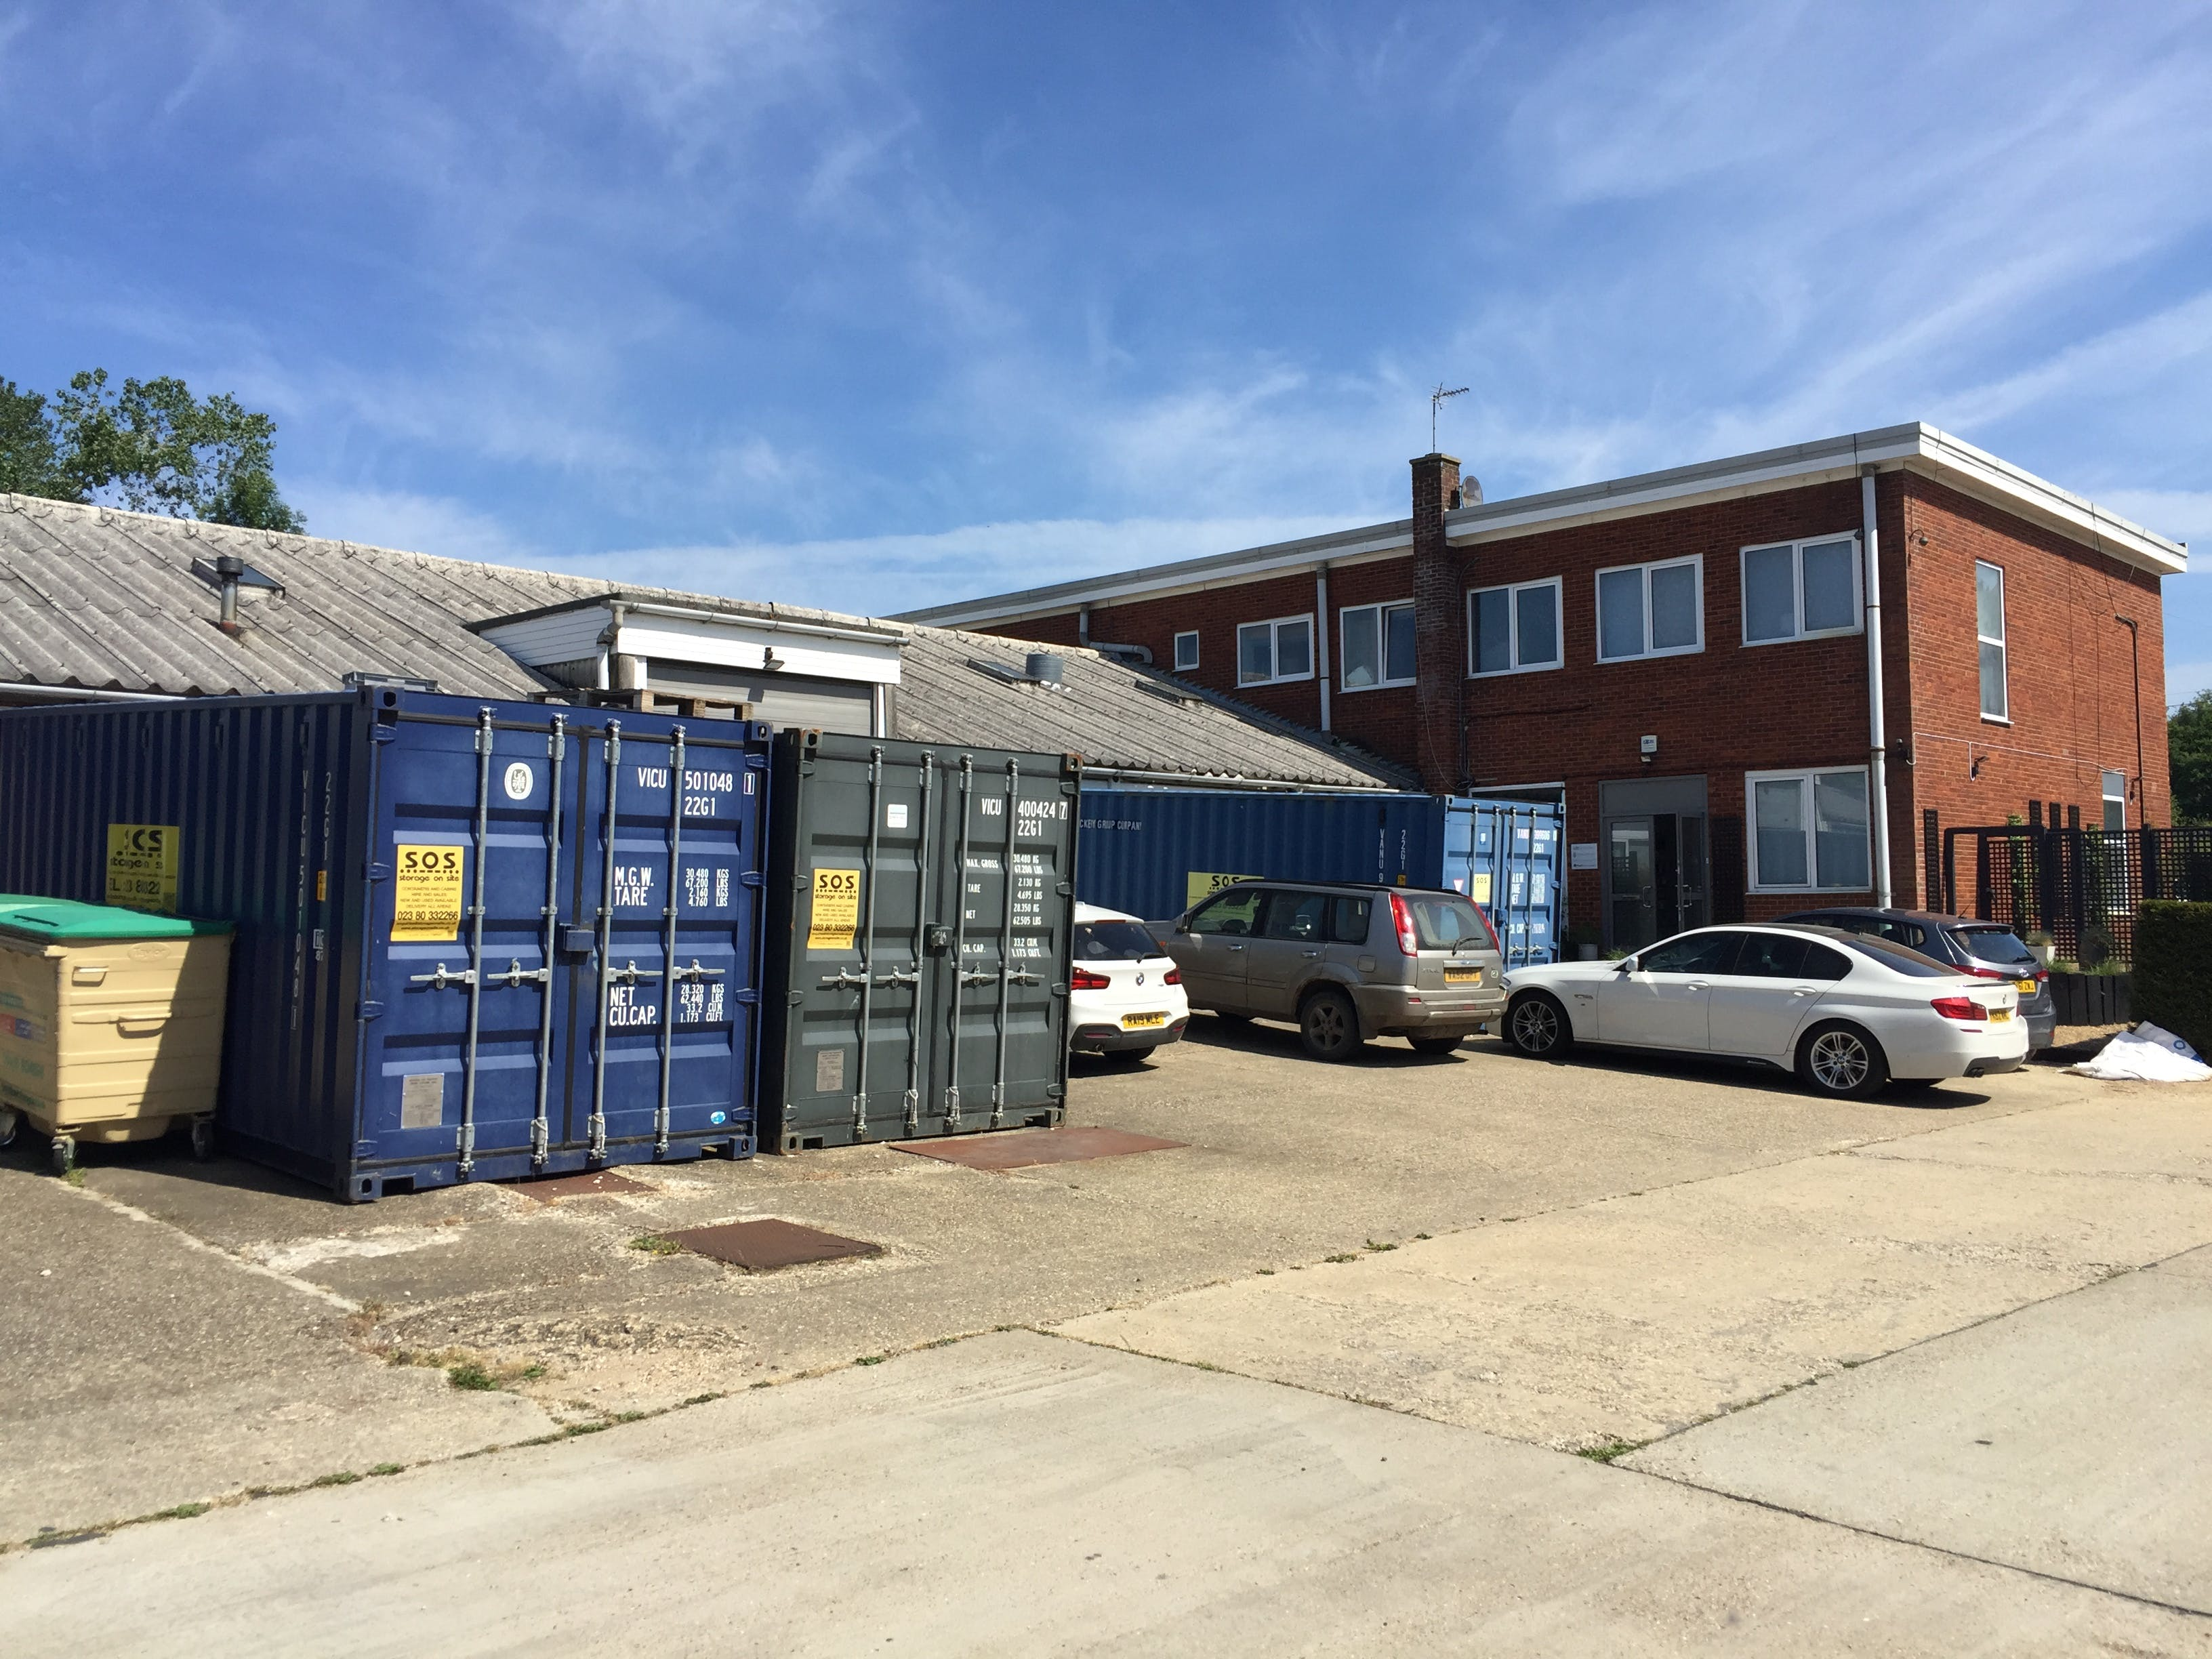 Blacknest House, Alton, Warehouse & Industrial To Let / For Sale - IMG_5896 1.JPG